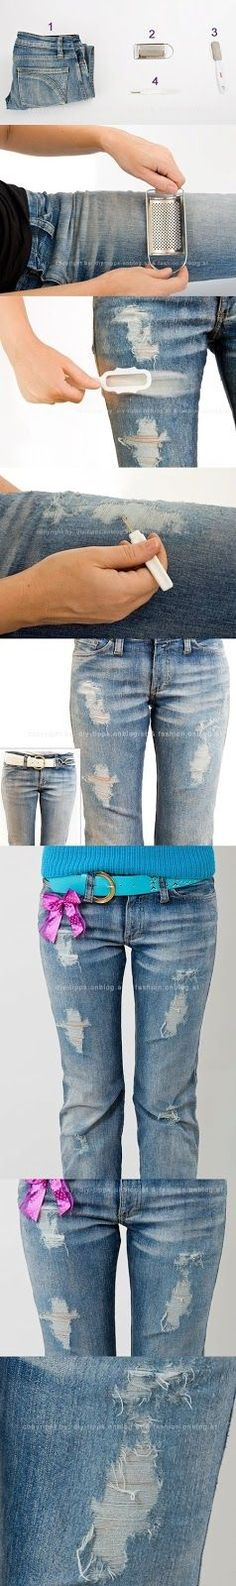 How to distress your jeans.